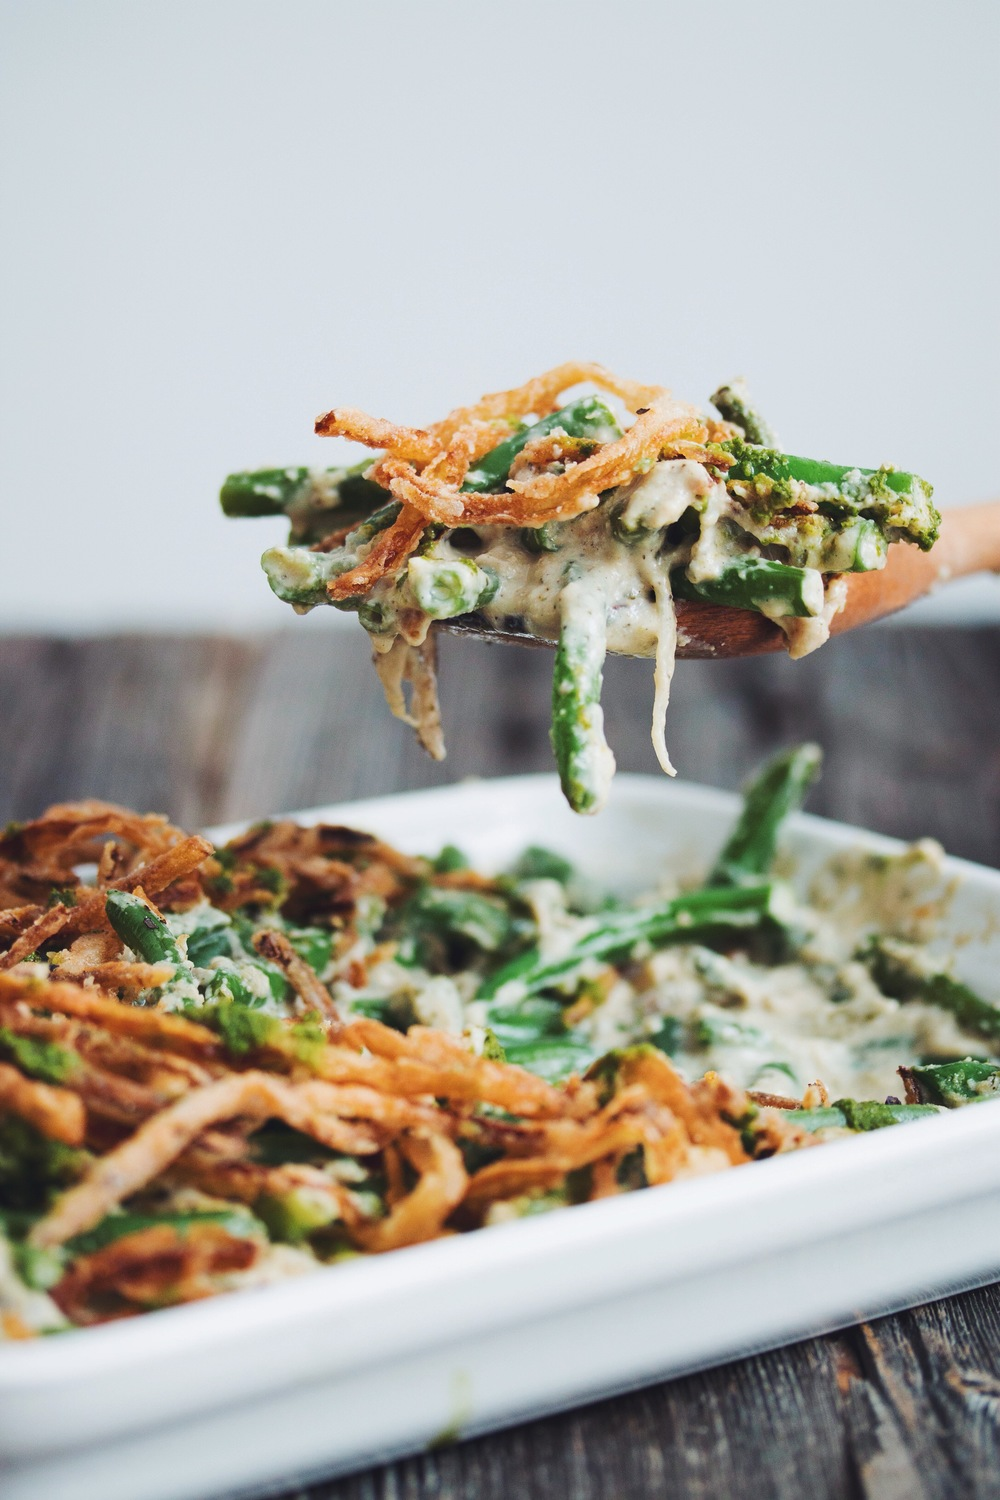 #vegan #glutenfree green bean casserole with cripsy pesto onions | RECIPE on hotforfoodblog.com